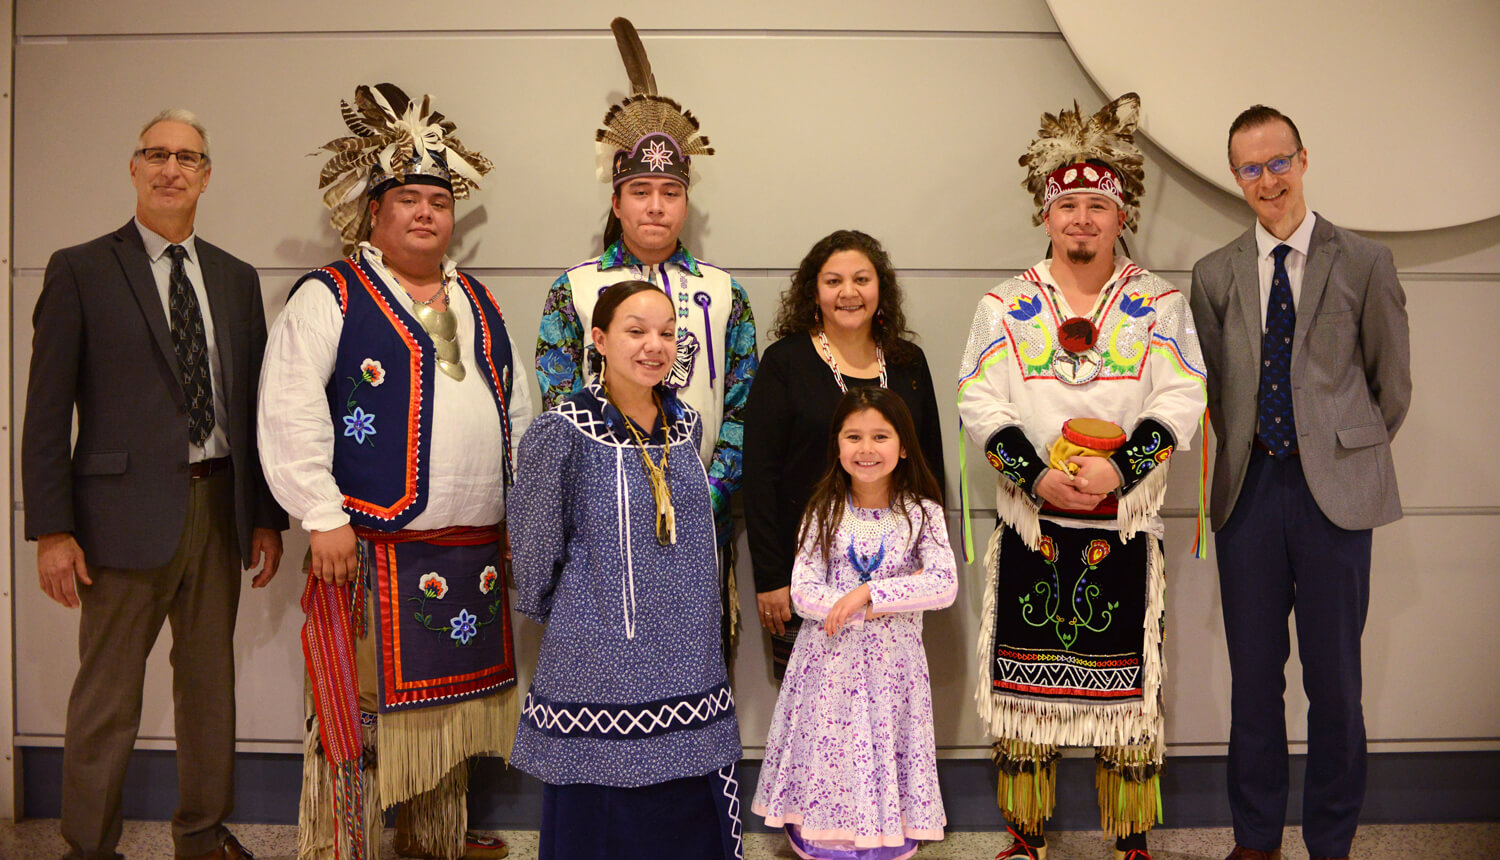 Flanked by Dean Andrew Hoffman (left) and Dr. Oliver Garden (right), members of the Iroquois Confederacy stand with Dr. Evelyn Galban (center, in black).